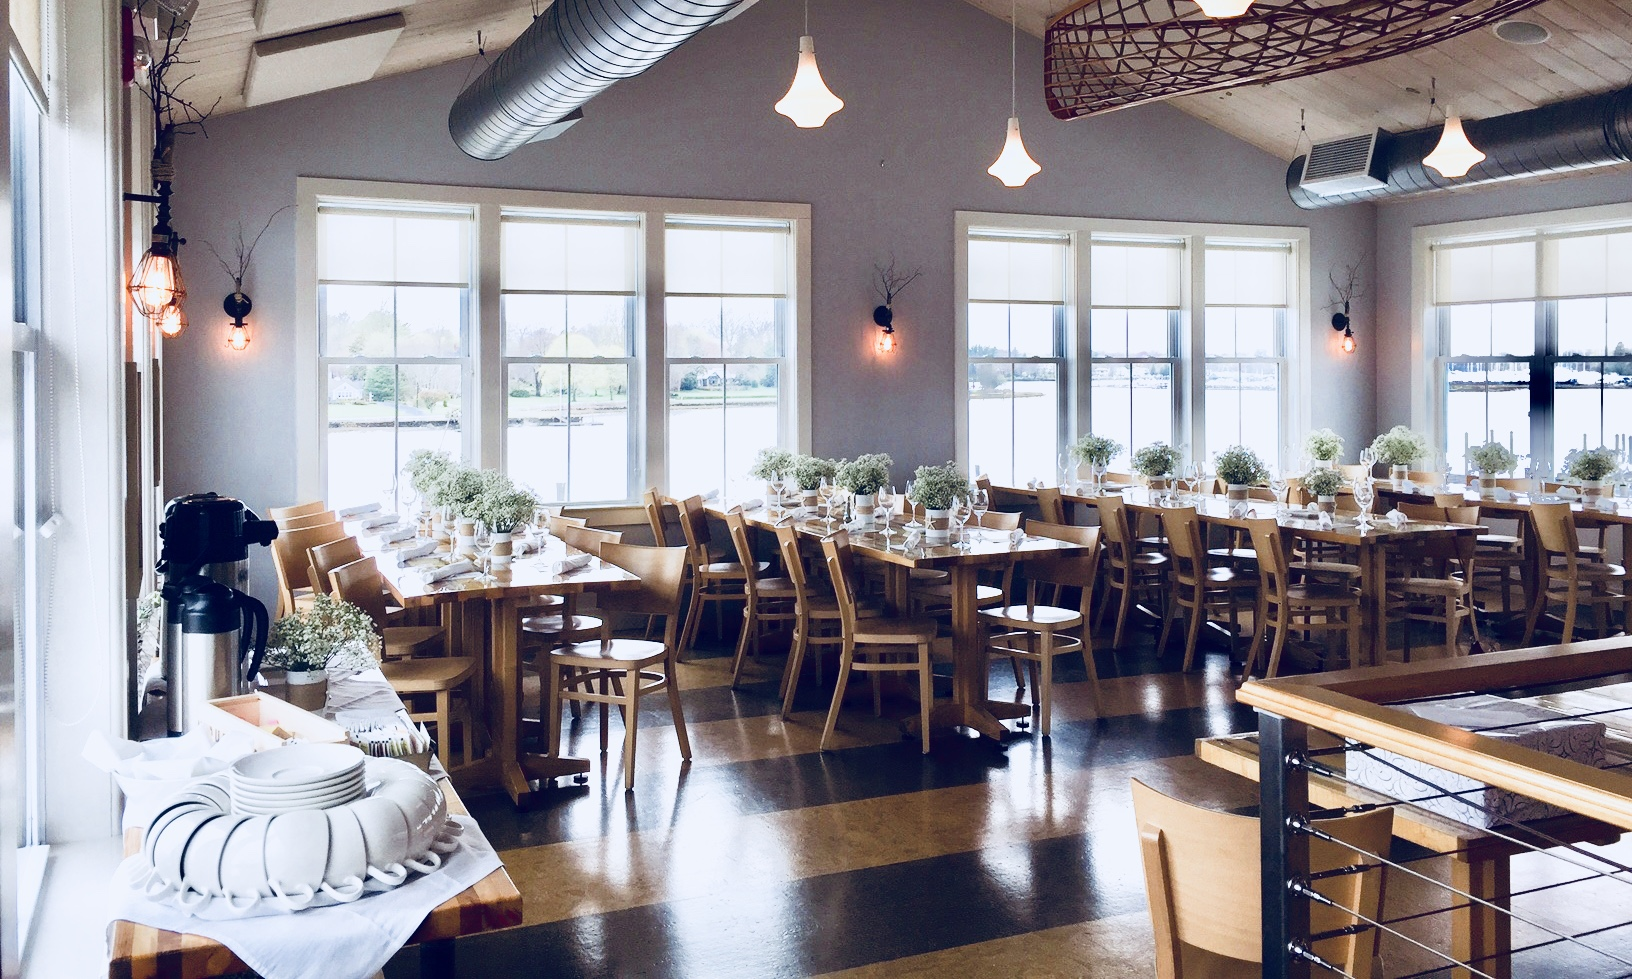 corporate gatherings - Trafford Restaurant provides exceptional service for business meetings, presentations, luncheons, and parties both large and small.